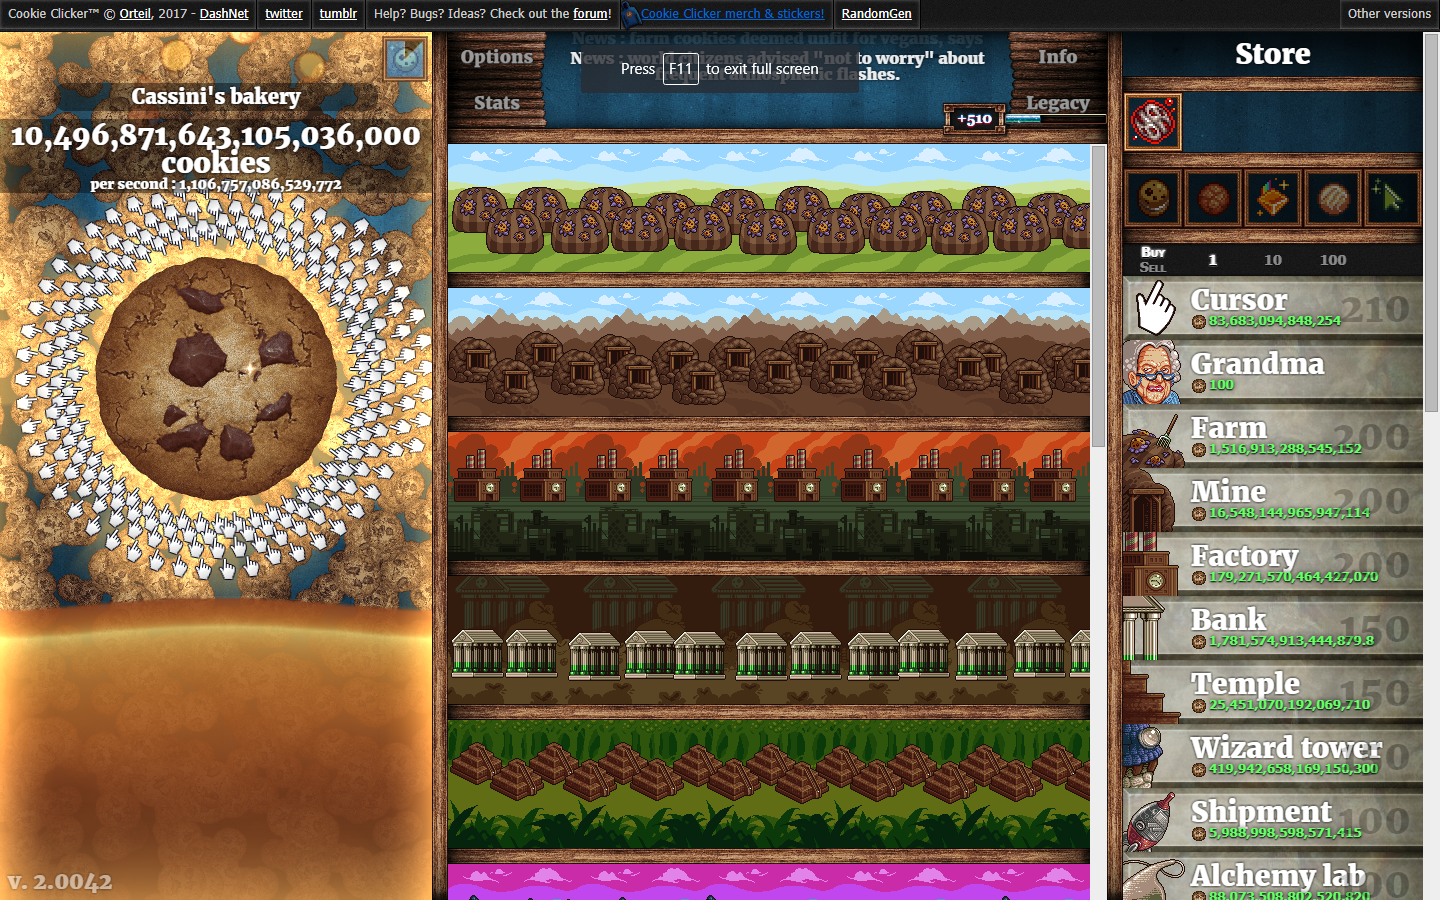 Cps highscores | Cookie Clicker Wiki | FANDOM powered by Wikia